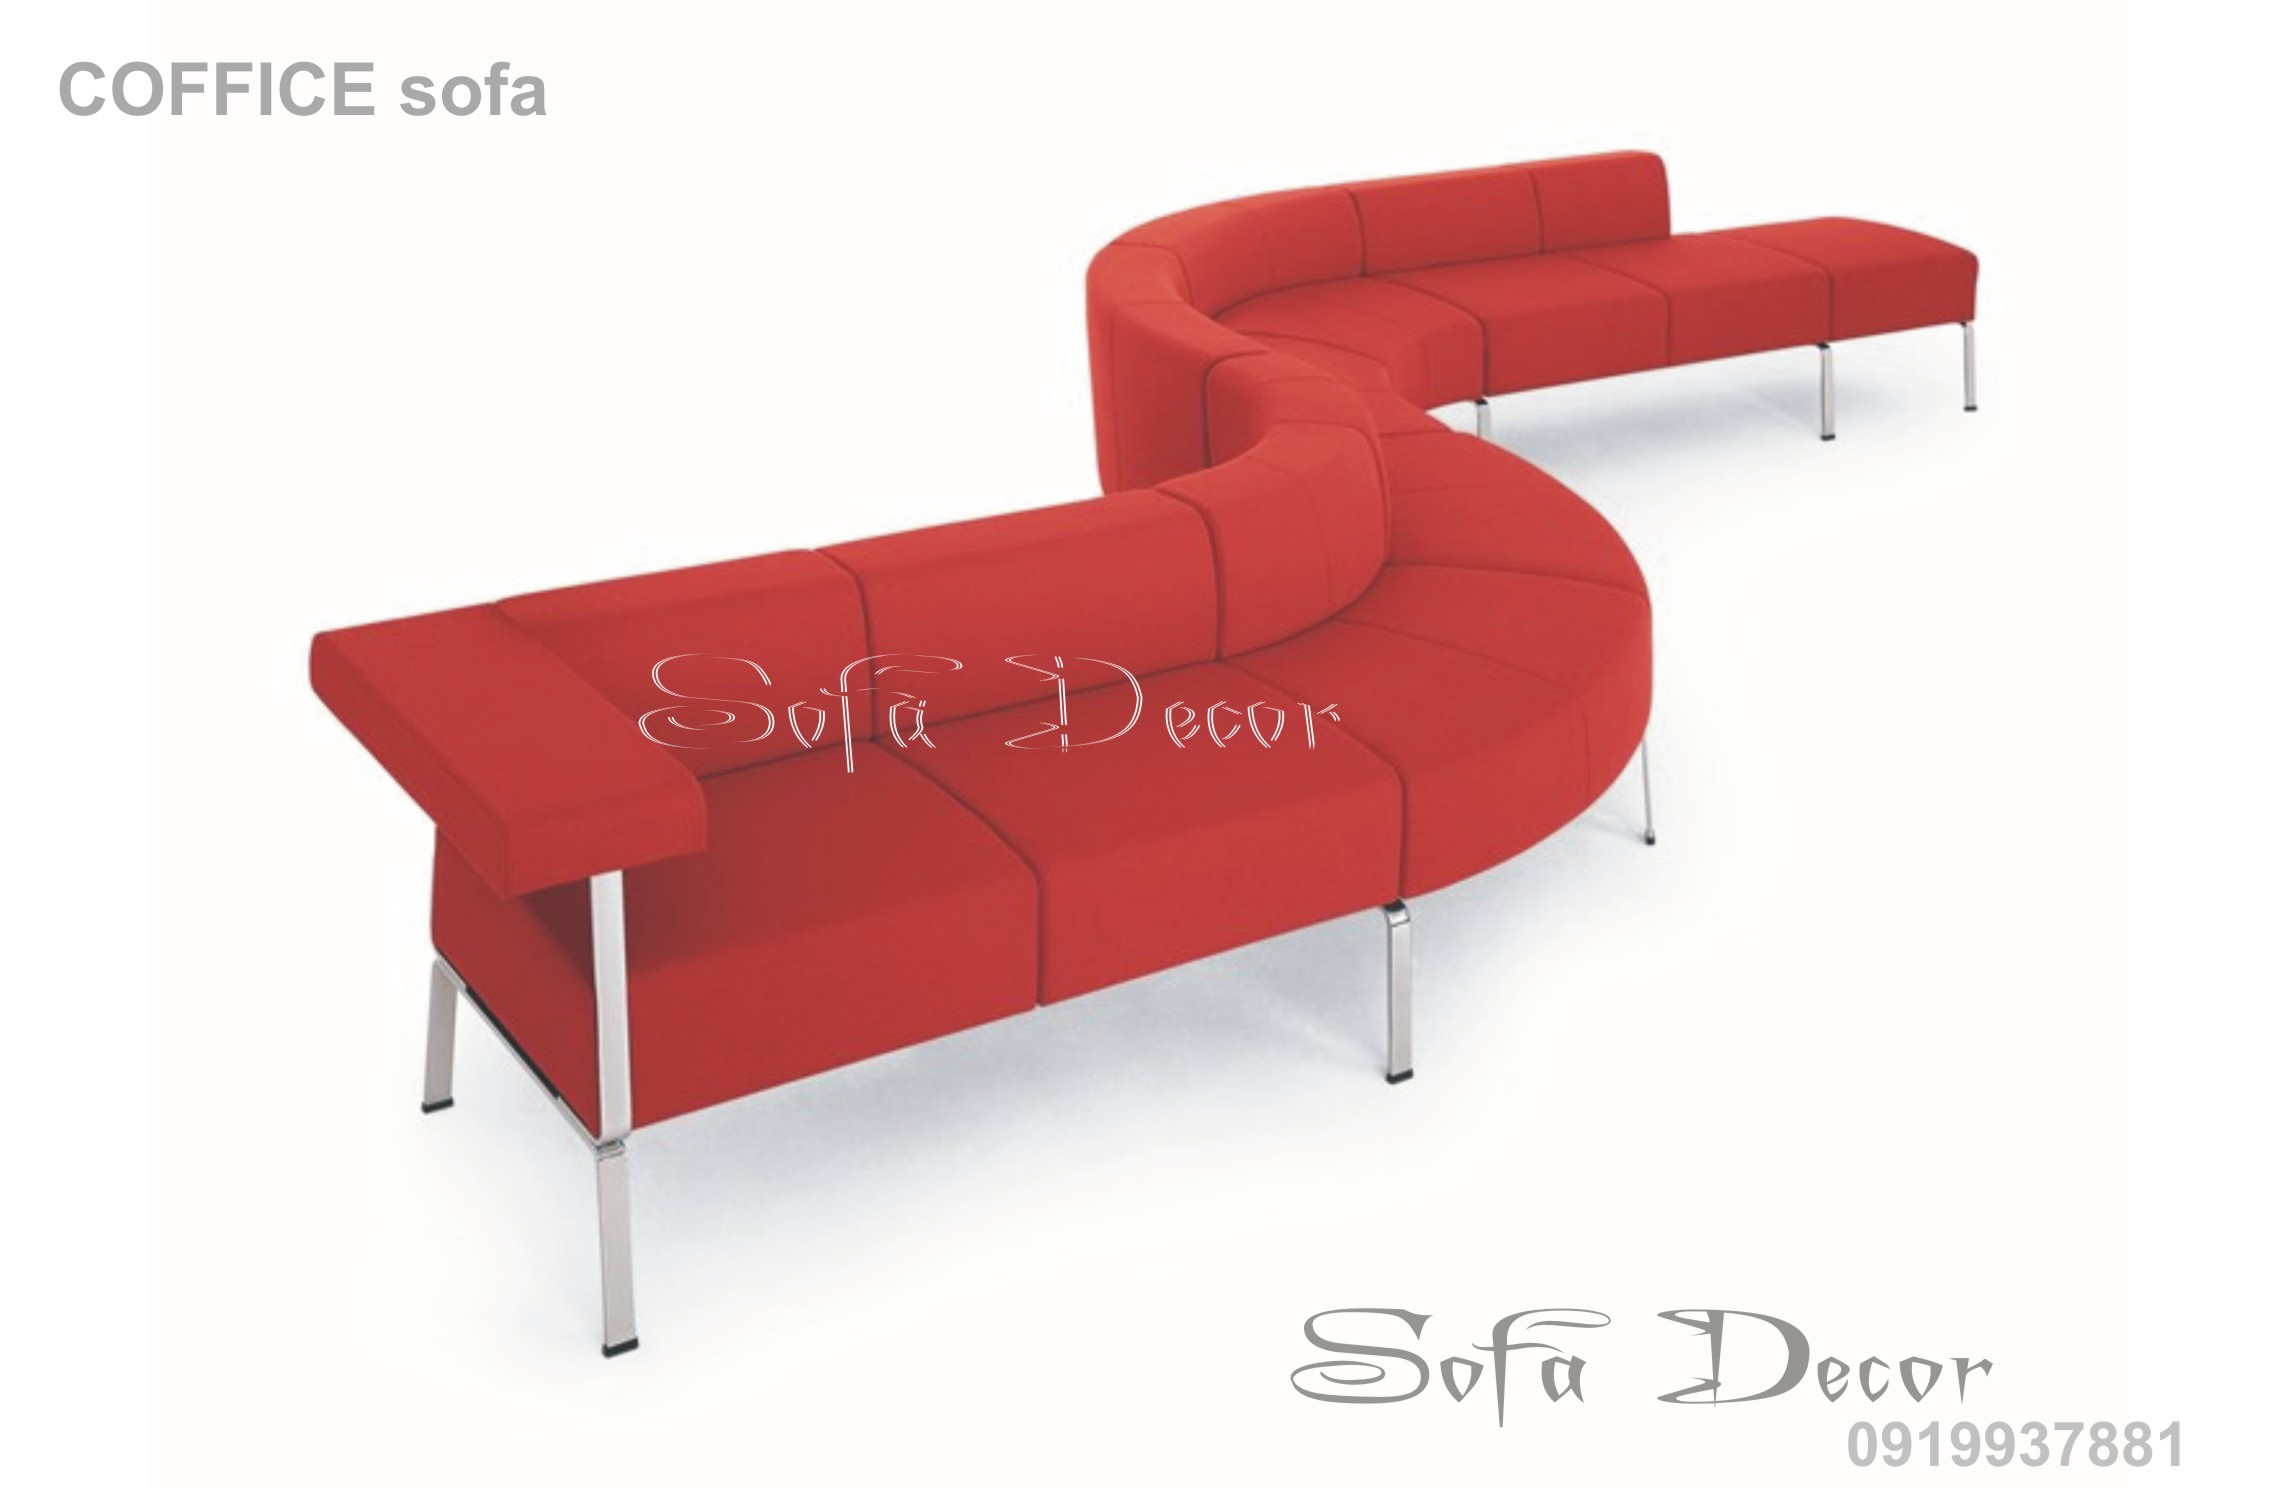 COFFICE Sofa